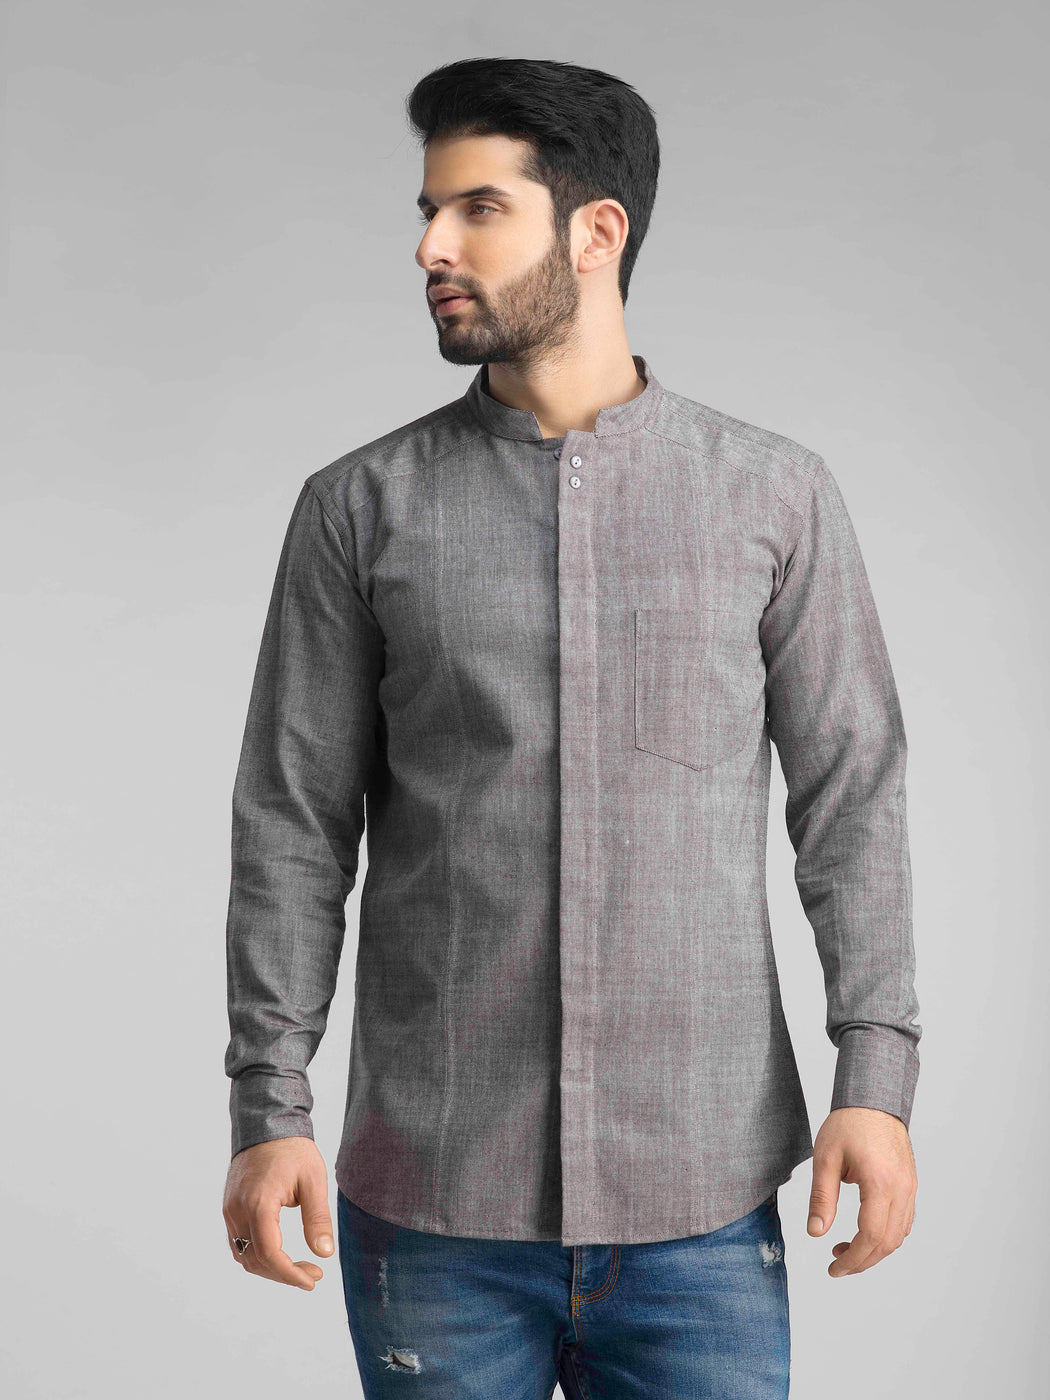 The Orion Shirt - Charcoal